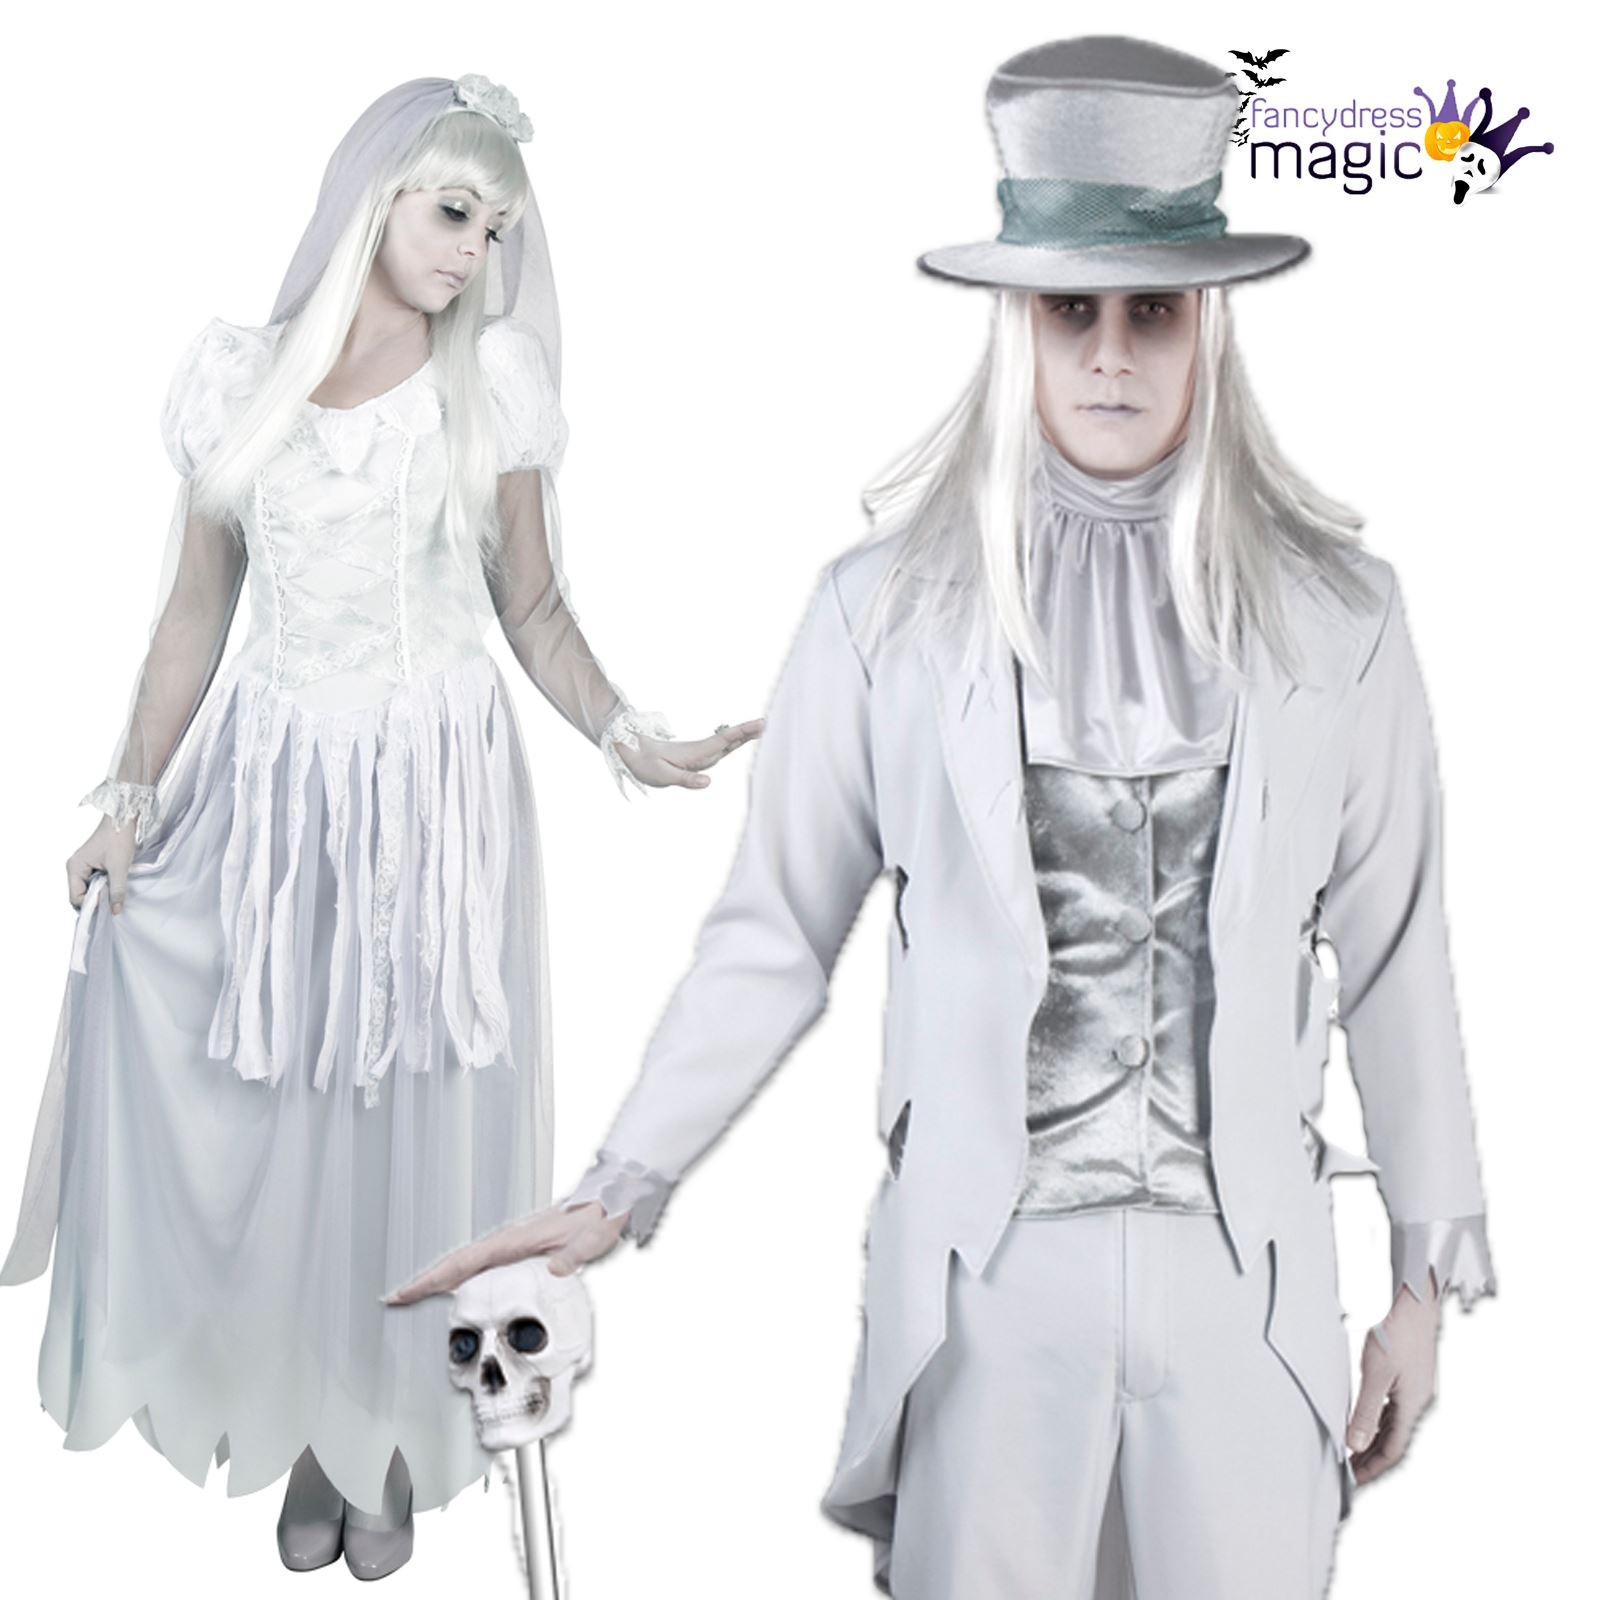 Ladies Mens Couples Halloween White Ghost Bride Groom Fancy Dress Costume Outfit  sc 1 st  eBay & Ladies Mens Couples Halloween White Ghost Bride Groom Fancy Dress ...